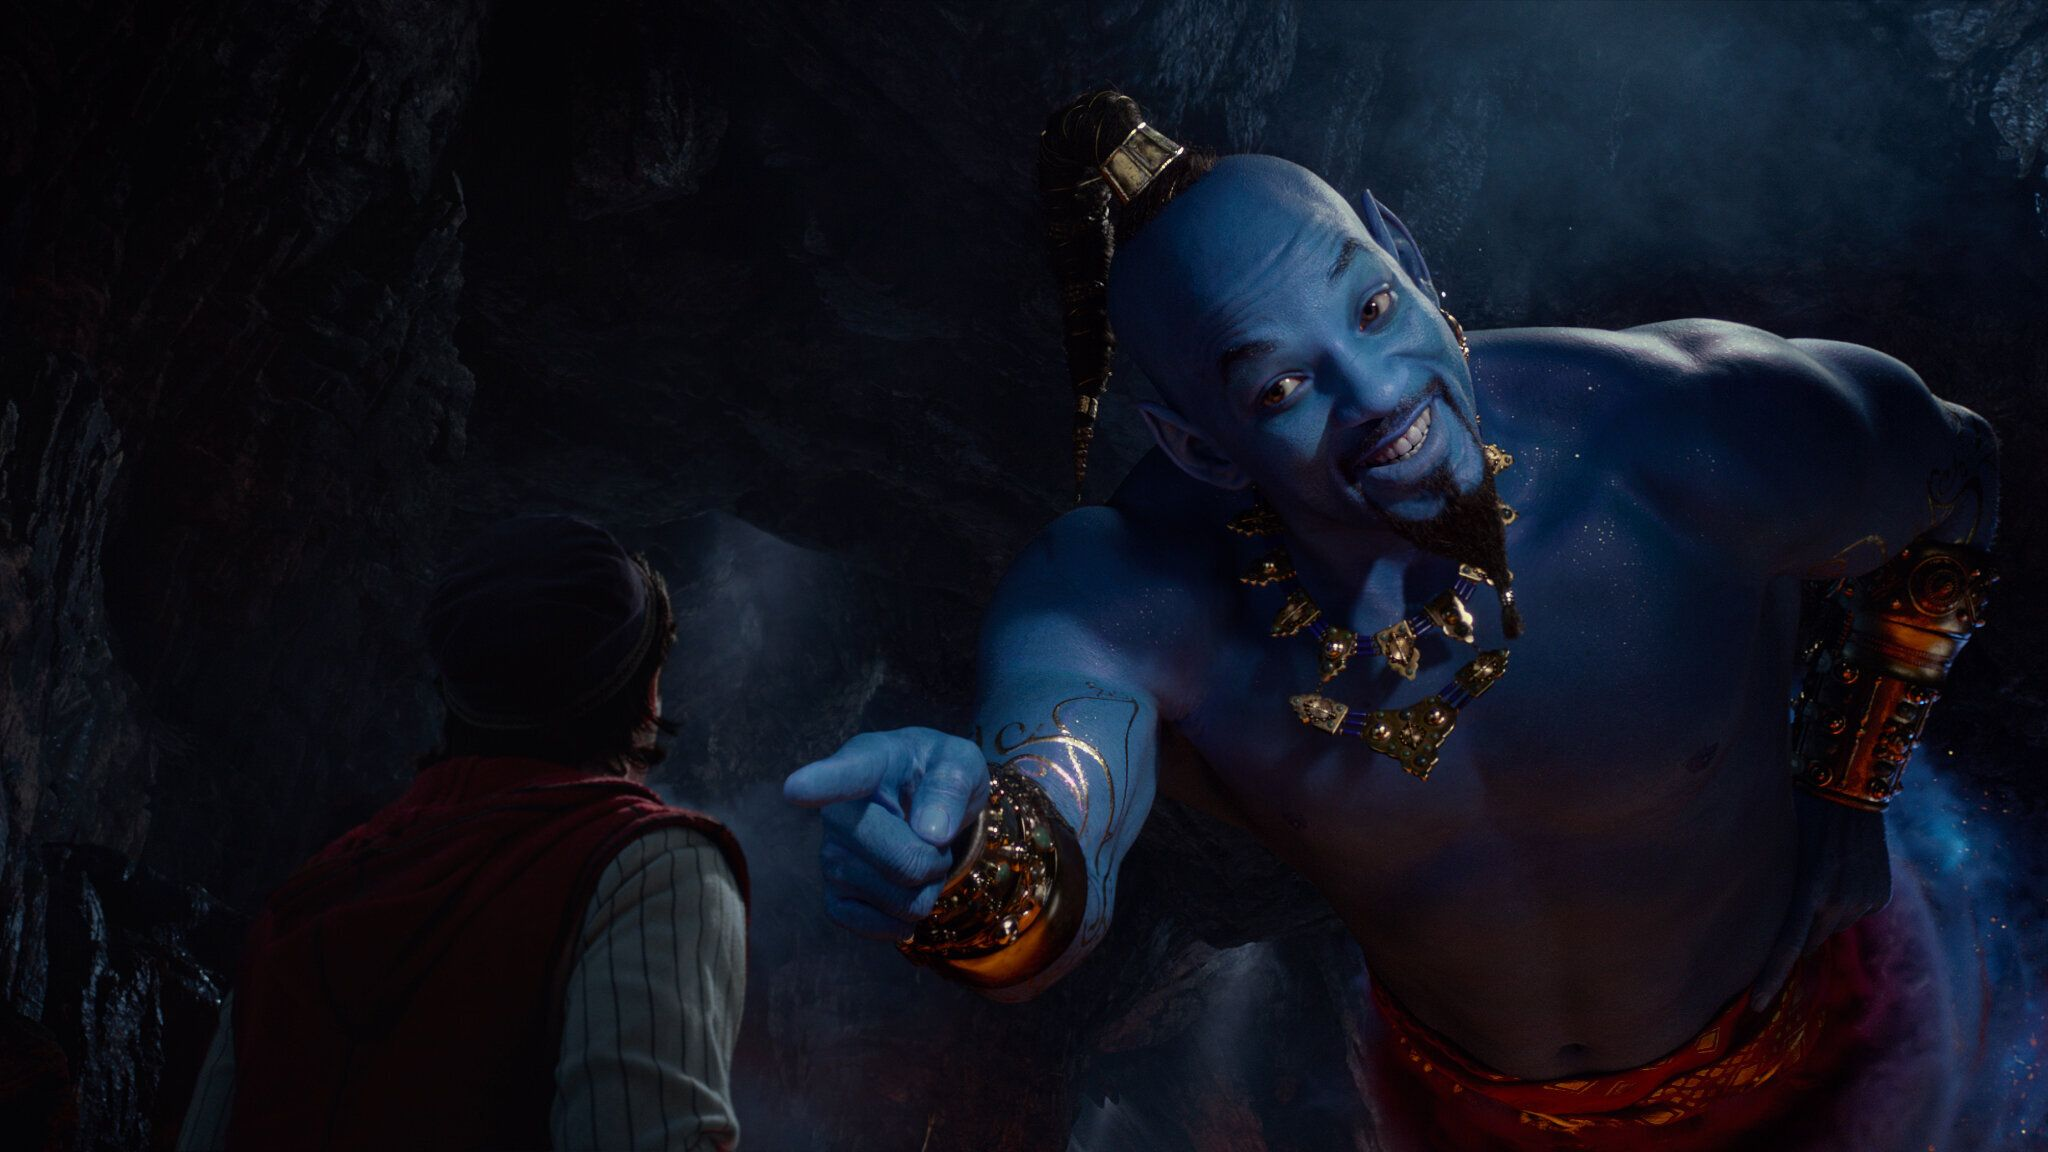 'Aladdin' Just Threw Some Blue On Will Smith And Expected Us To Be OK With It